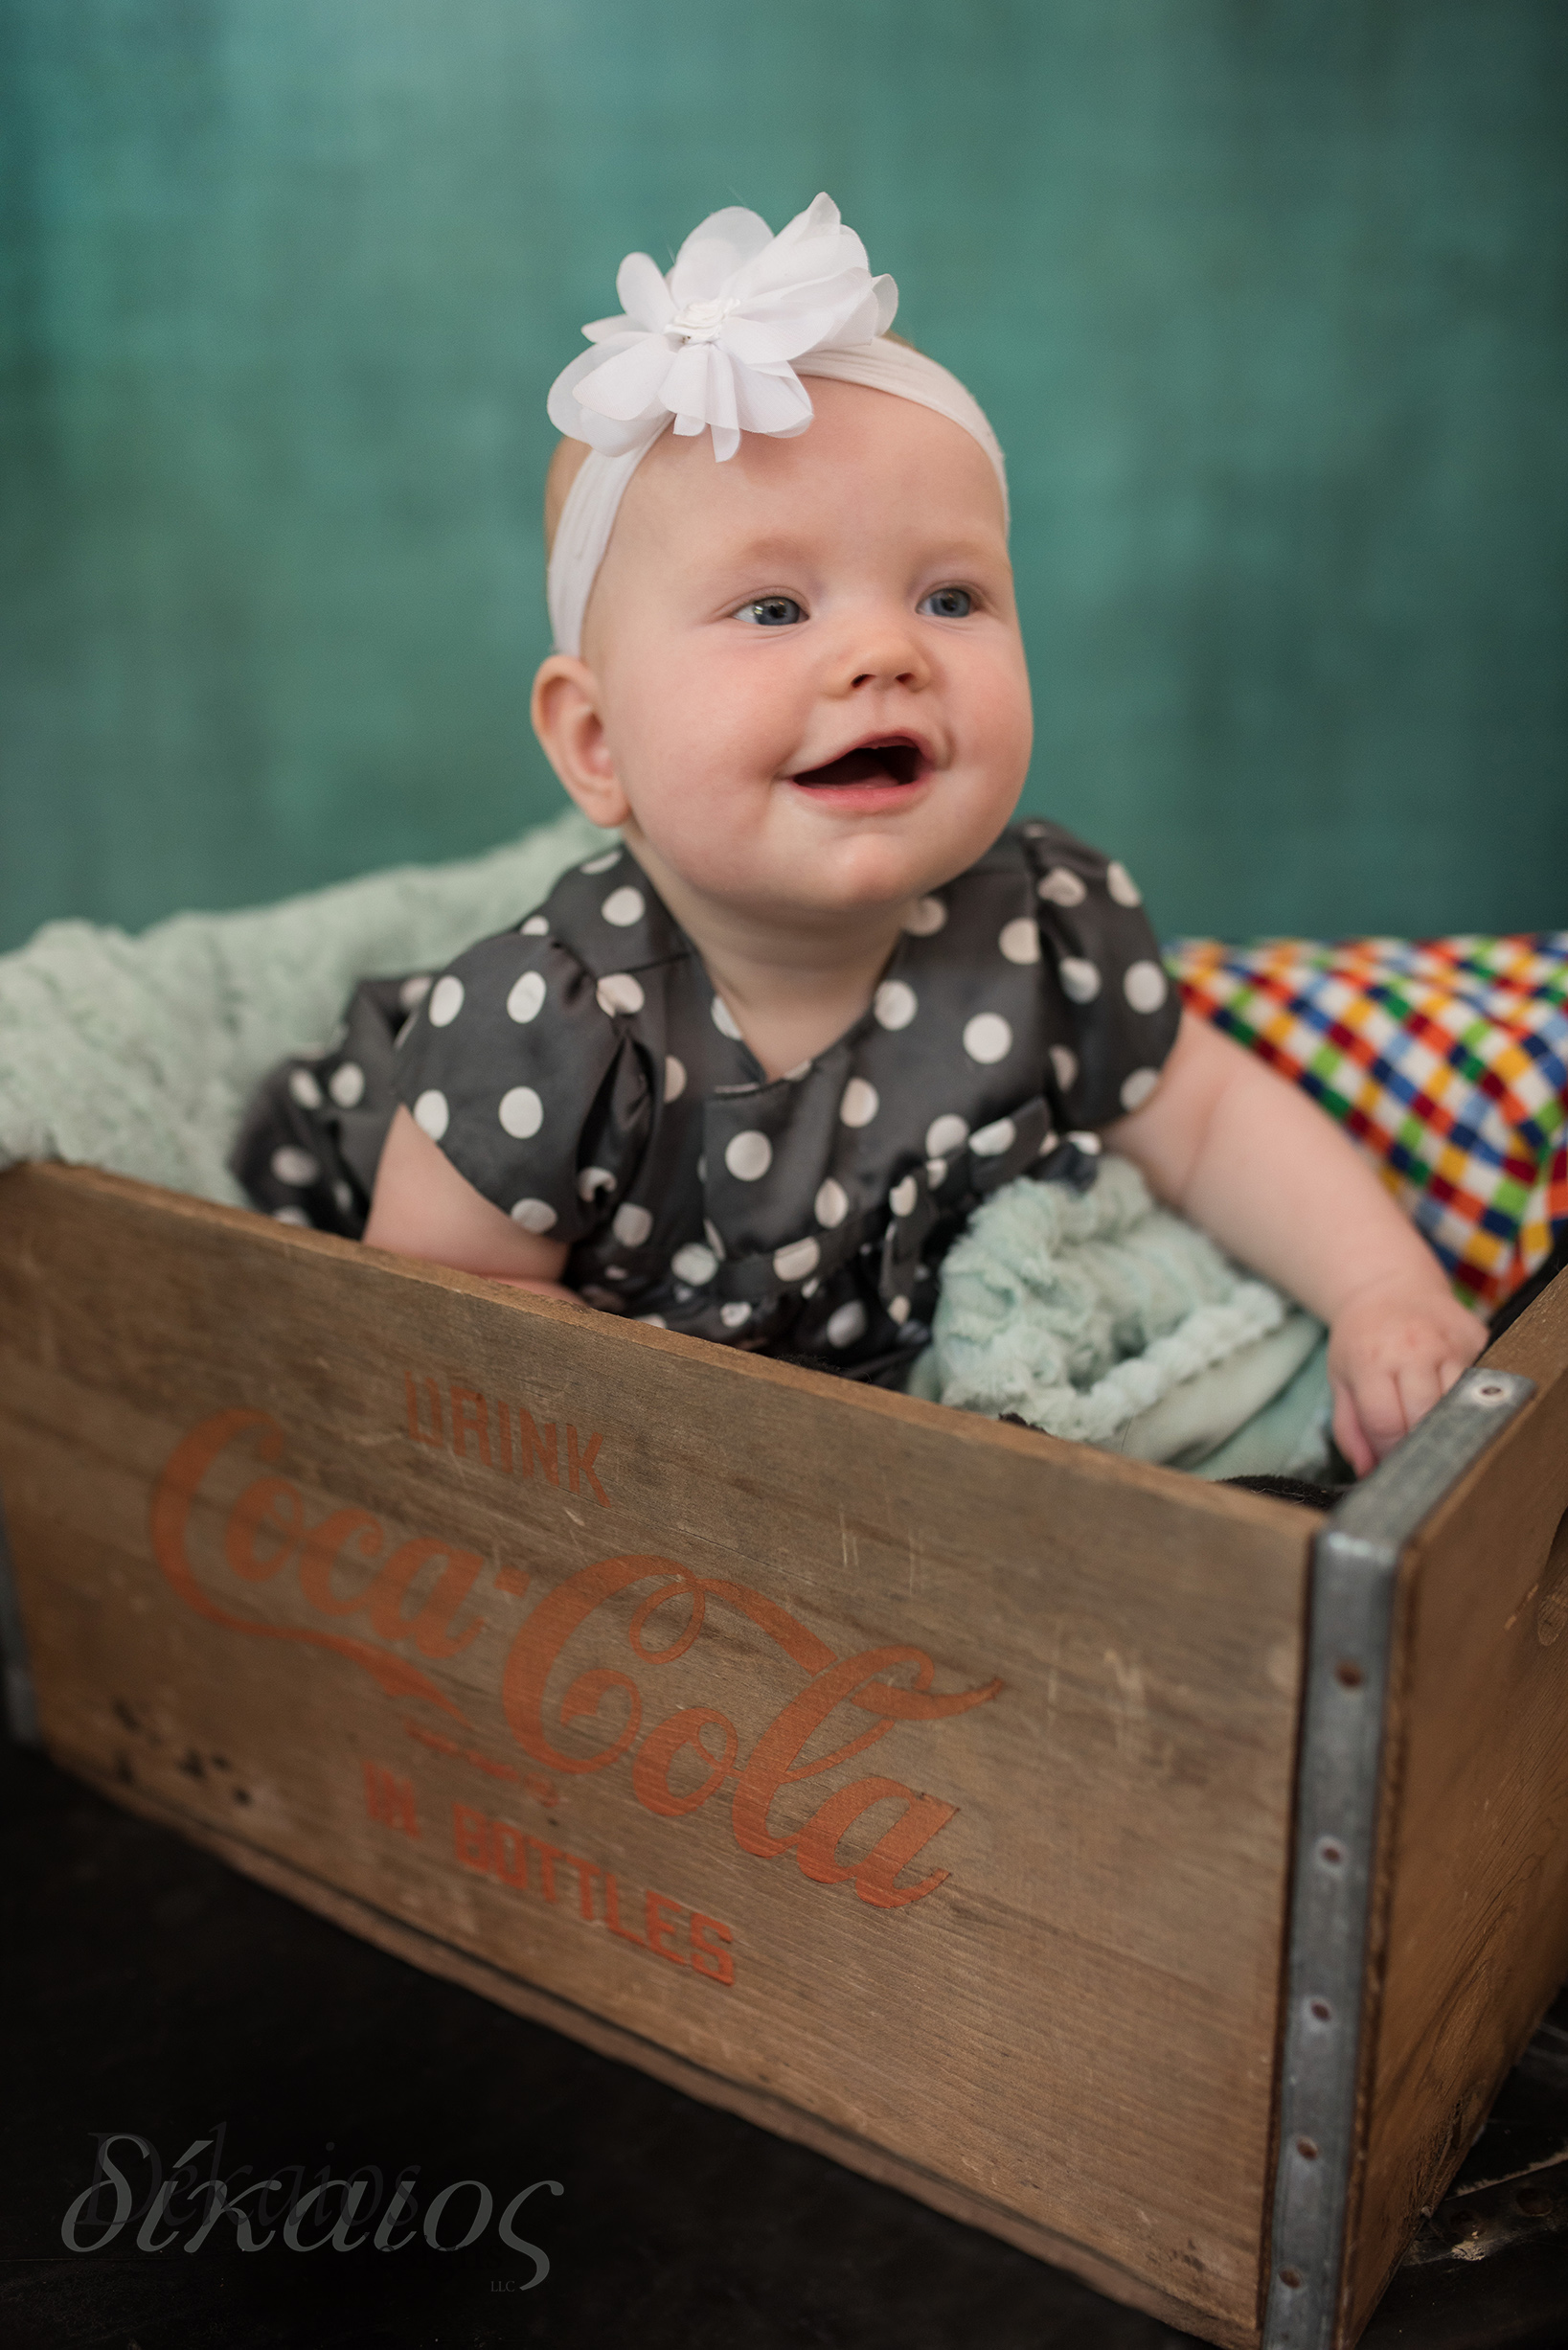 Baby Ginny who we photographed in January turned SIX months!